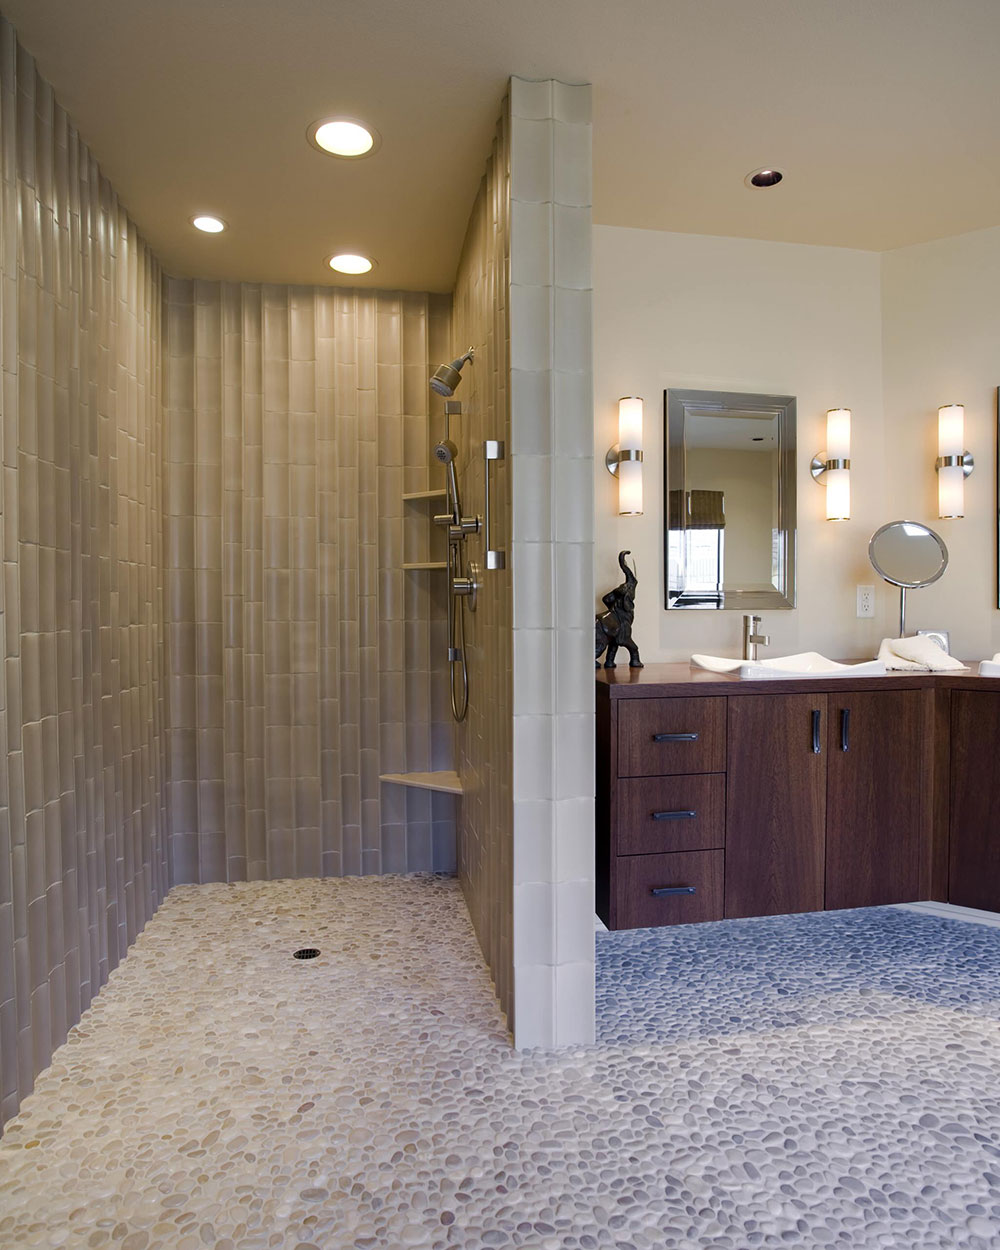 Huff-by-Kaufman-Homes-Inc How to clean the shower floor and make it sparkling clean